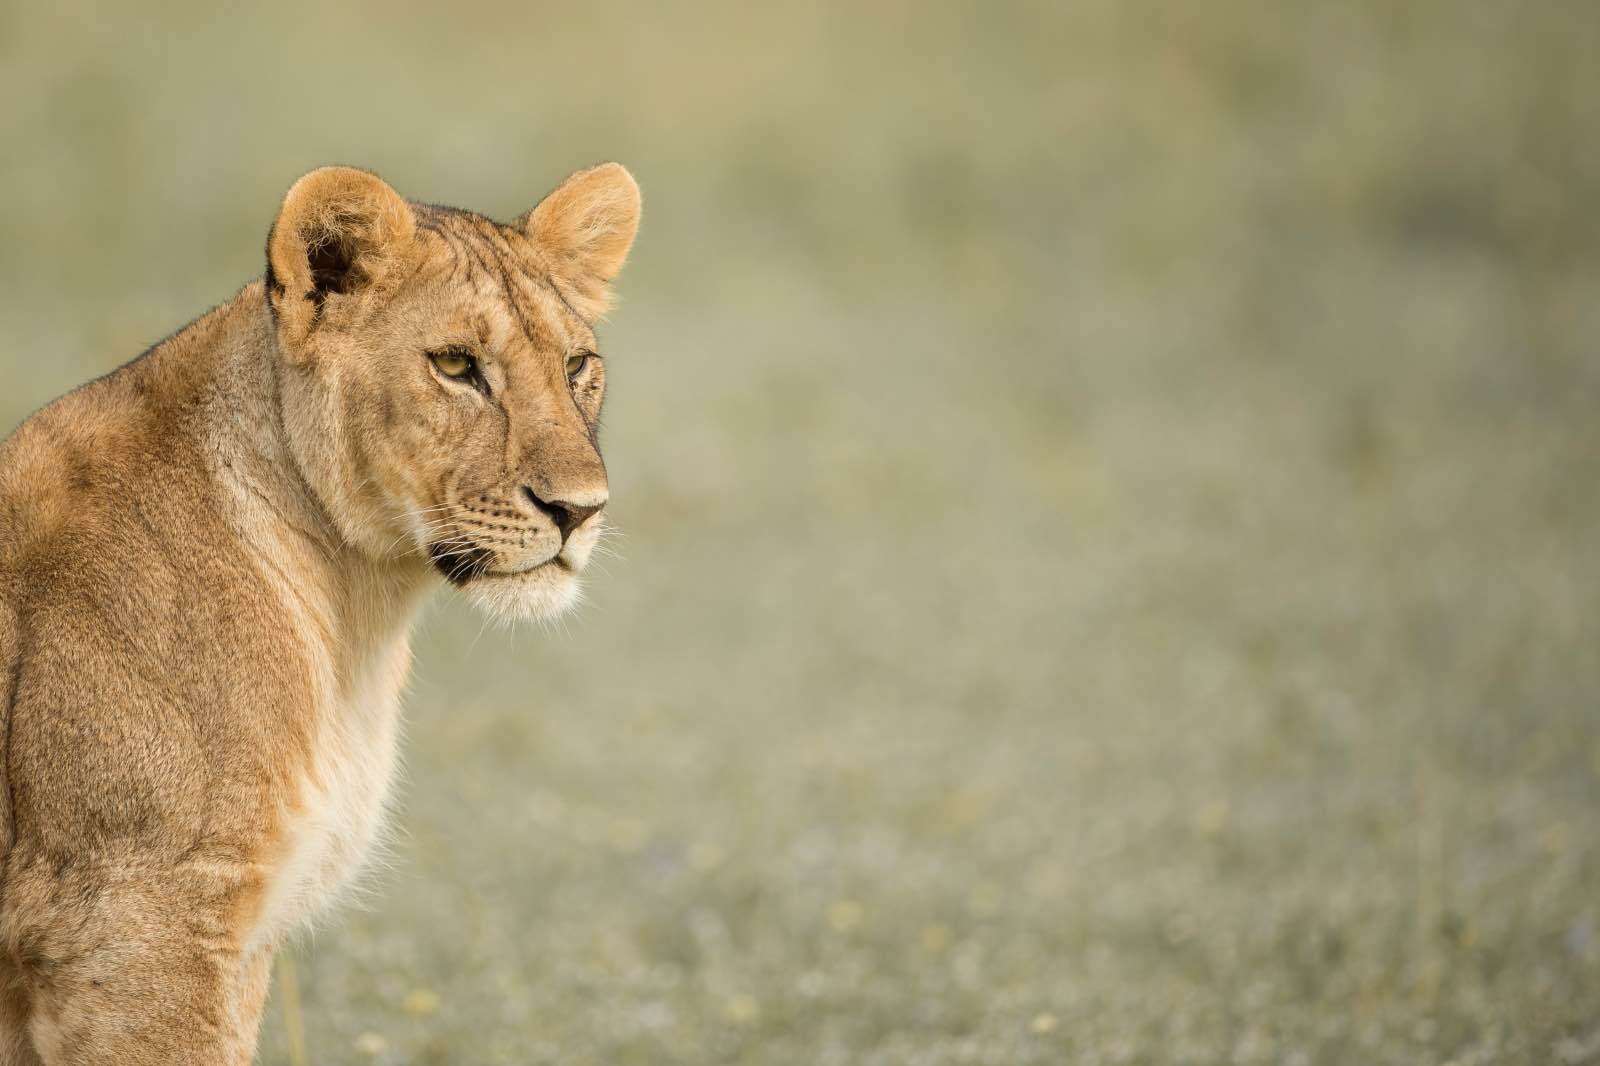 A lioness in Grumeti Reserve, part of the Serengeti-Mara ecosystem